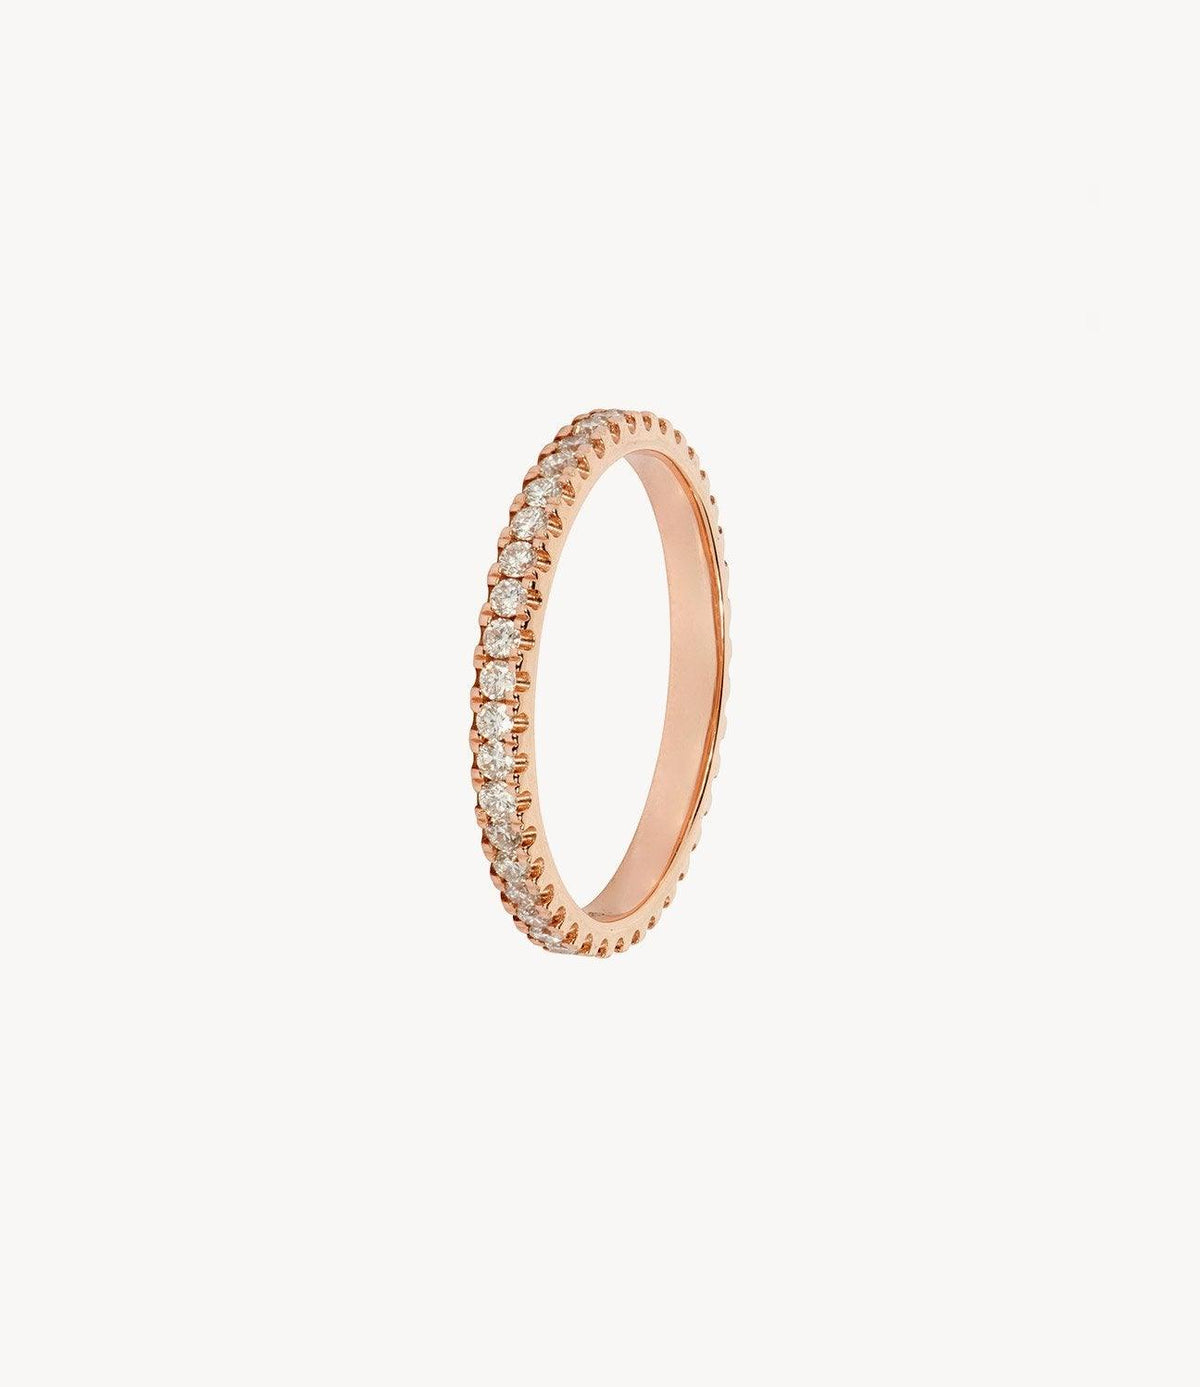 Rose Gold, Diamond Eternity Ring